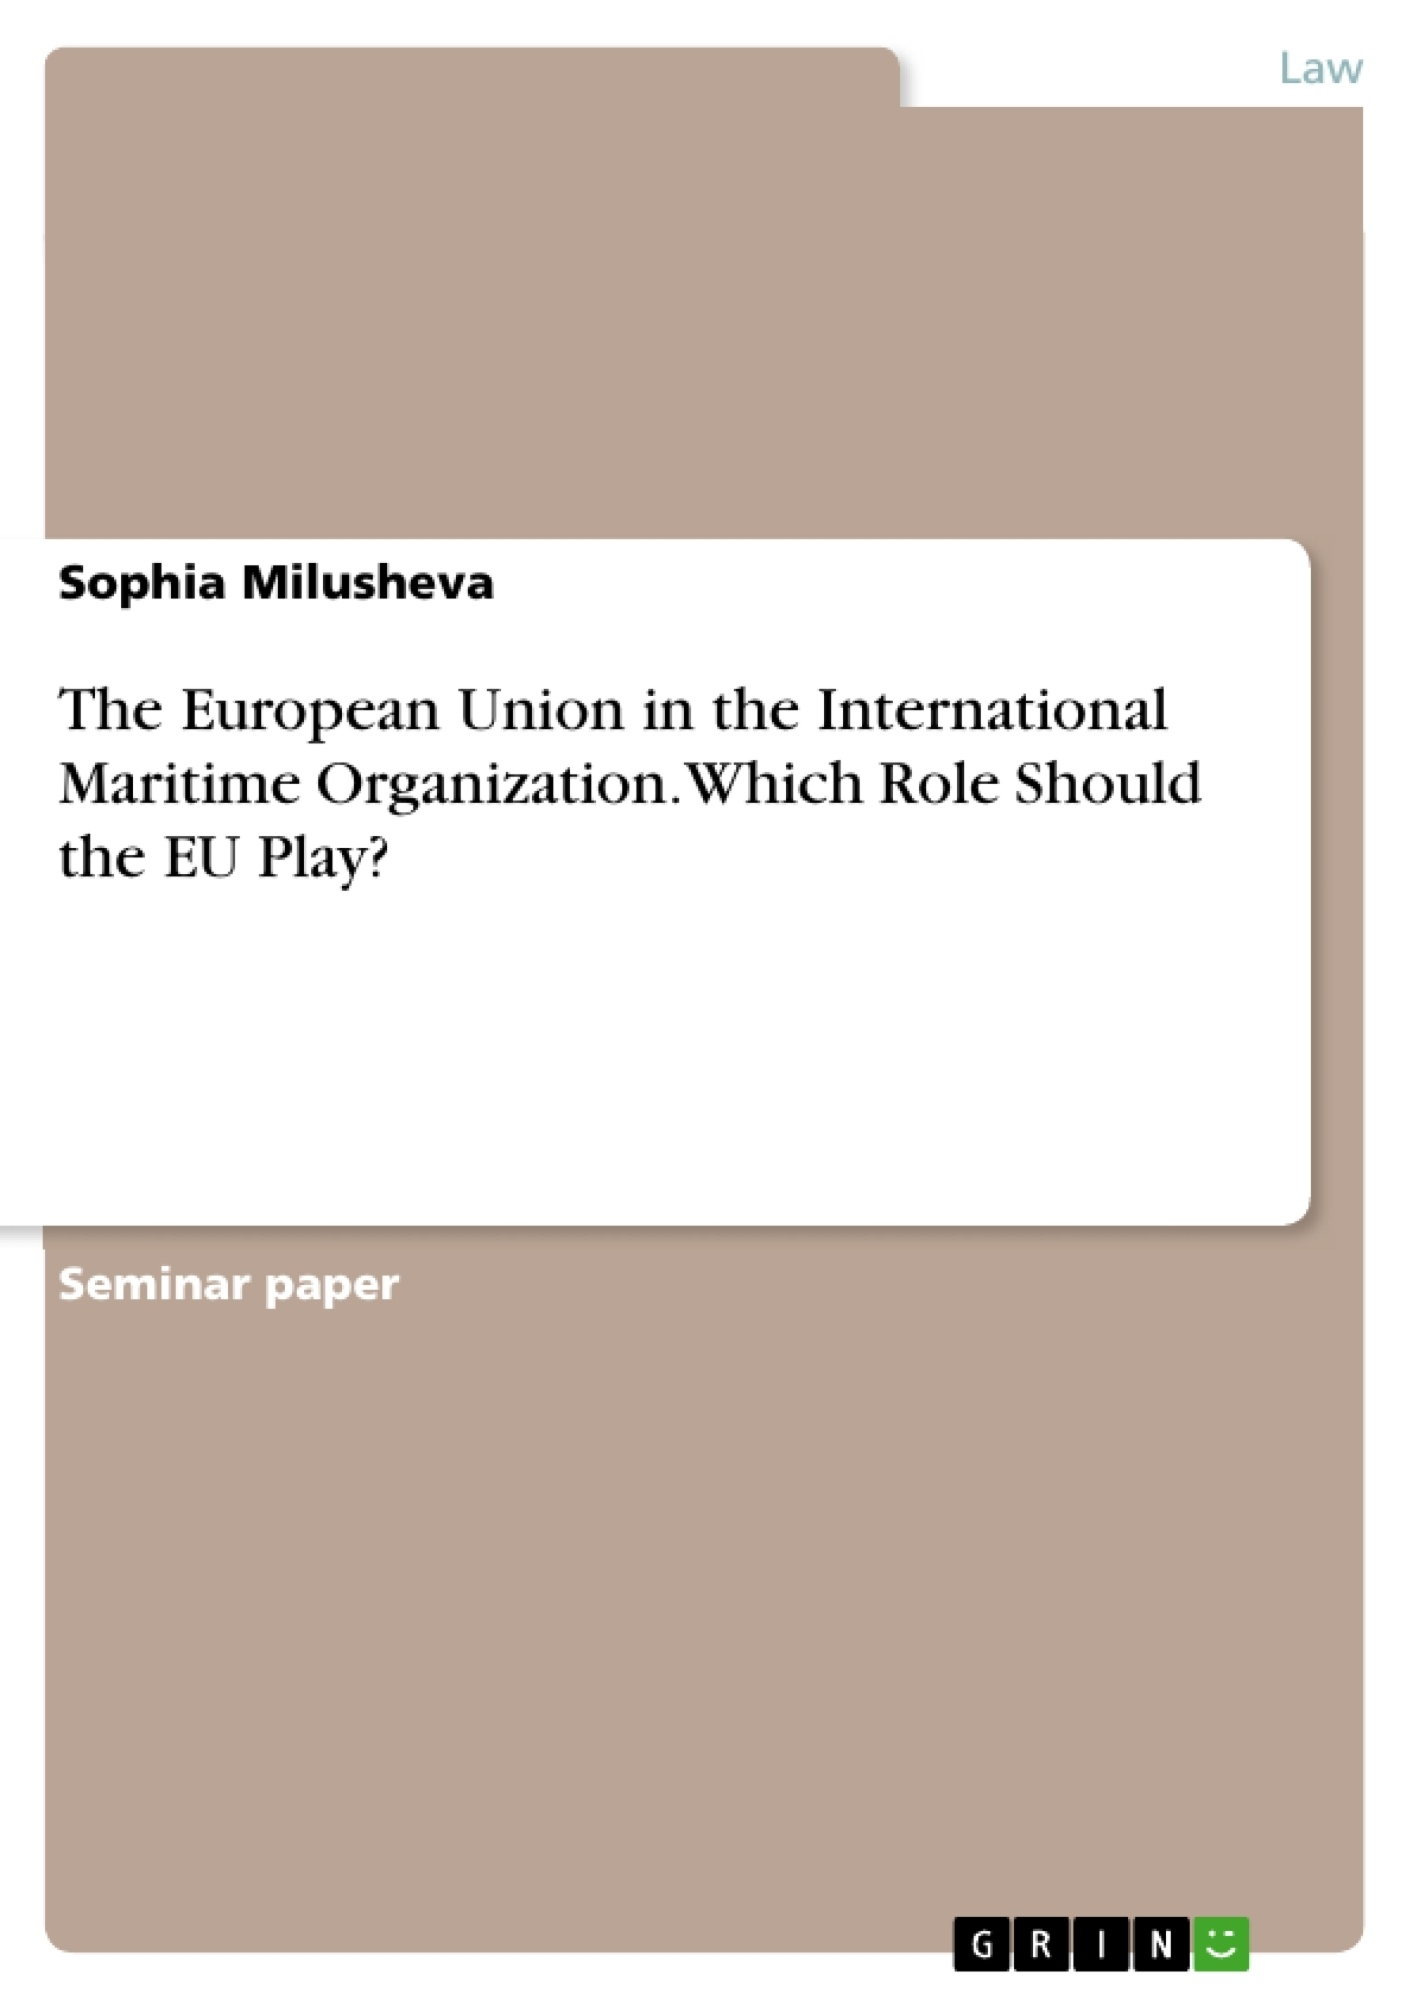 Title: The European Union in the International Maritime Organization. Which Role Should the EU Play?